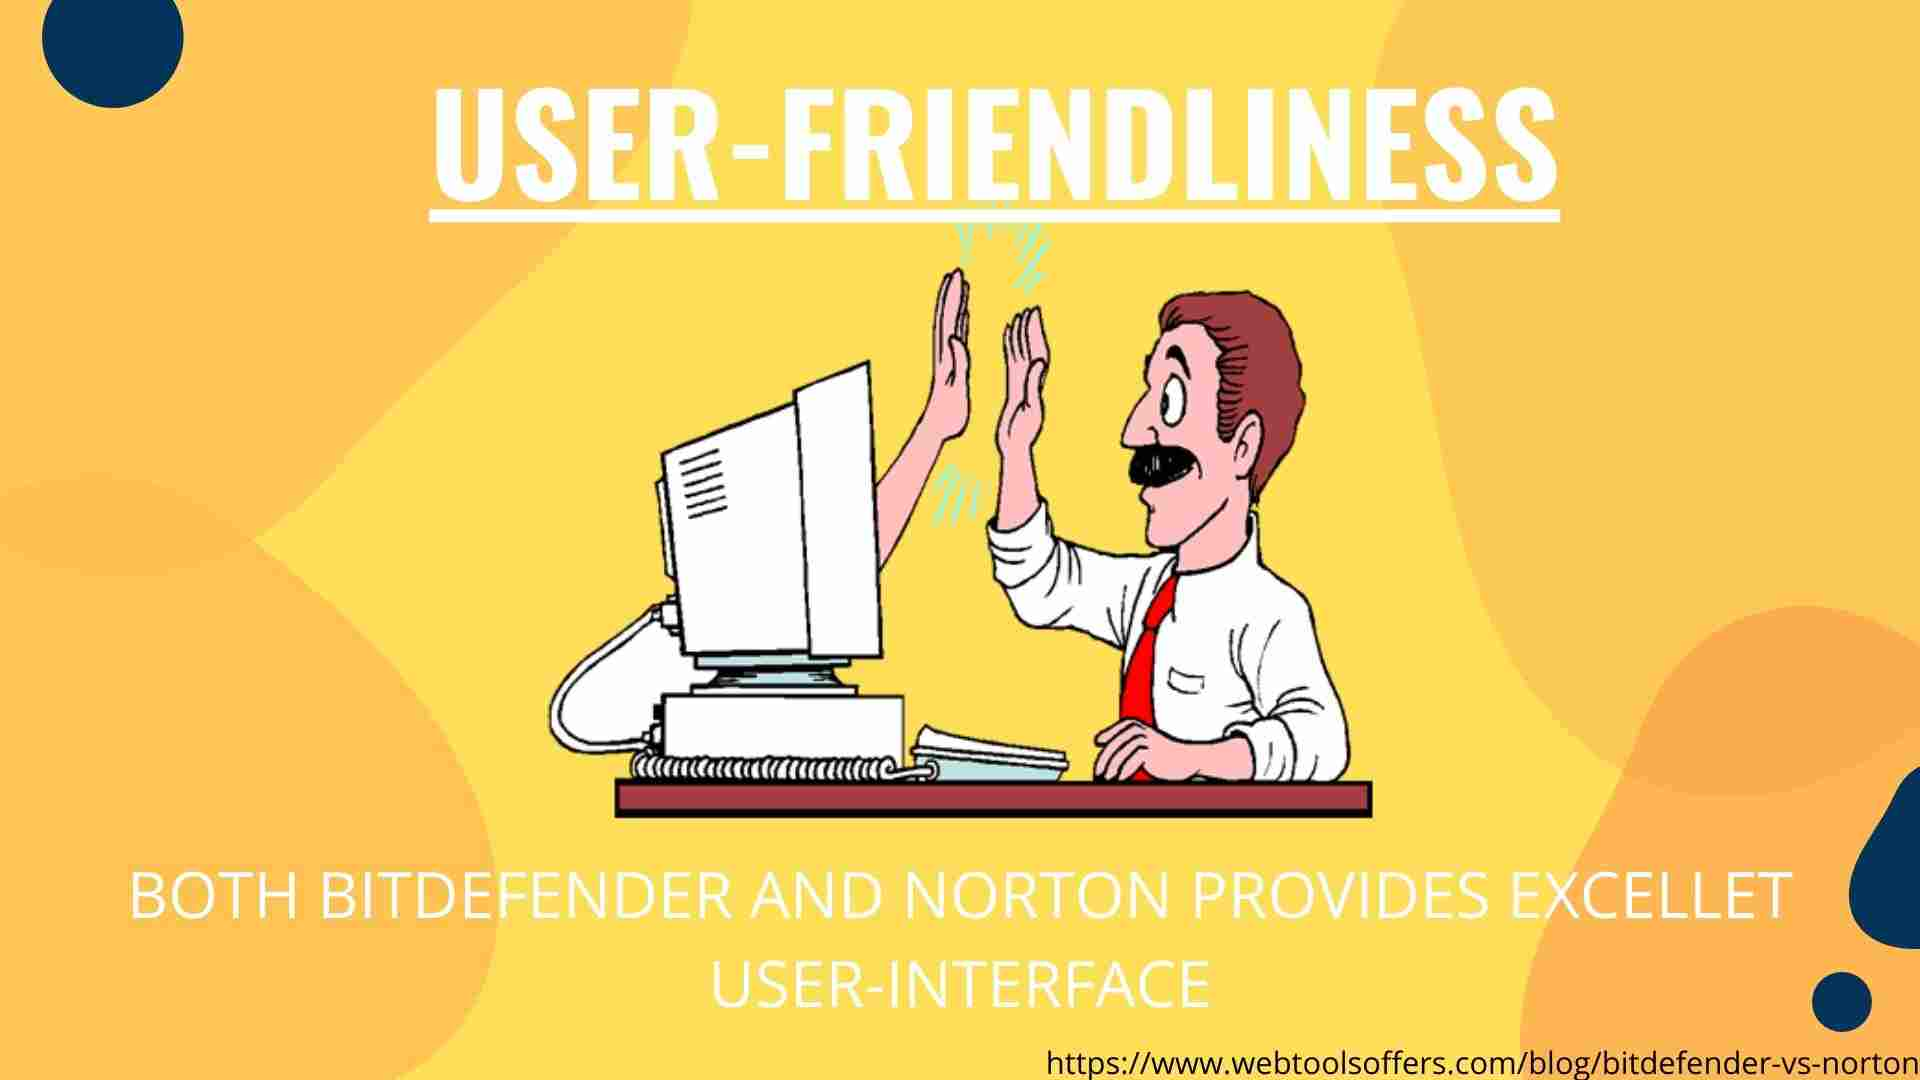 Bitdefender Vs Norton- user-Friendliness